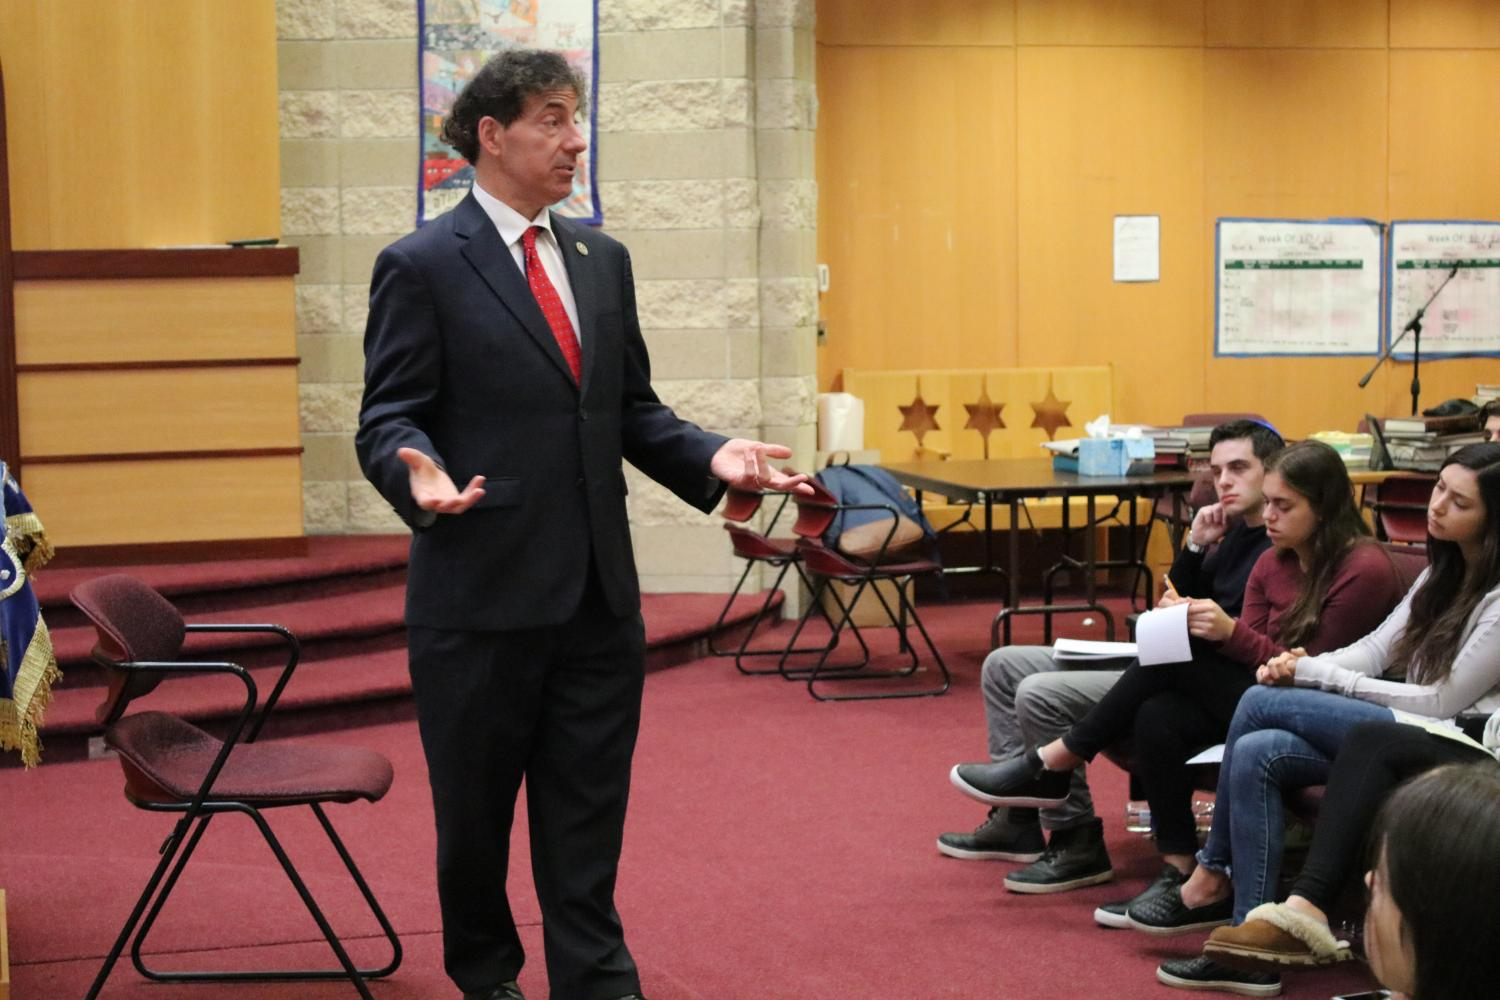 Rep. Jamie Raskin speaks about his path to candidacy, gun control and education policy among other key issues in the Feith Beit Midrash on Monday, Oct. 16. Raskin represents Maryland's 8th Congressional District, which encompasses  much of Montgomery County, including JDS.